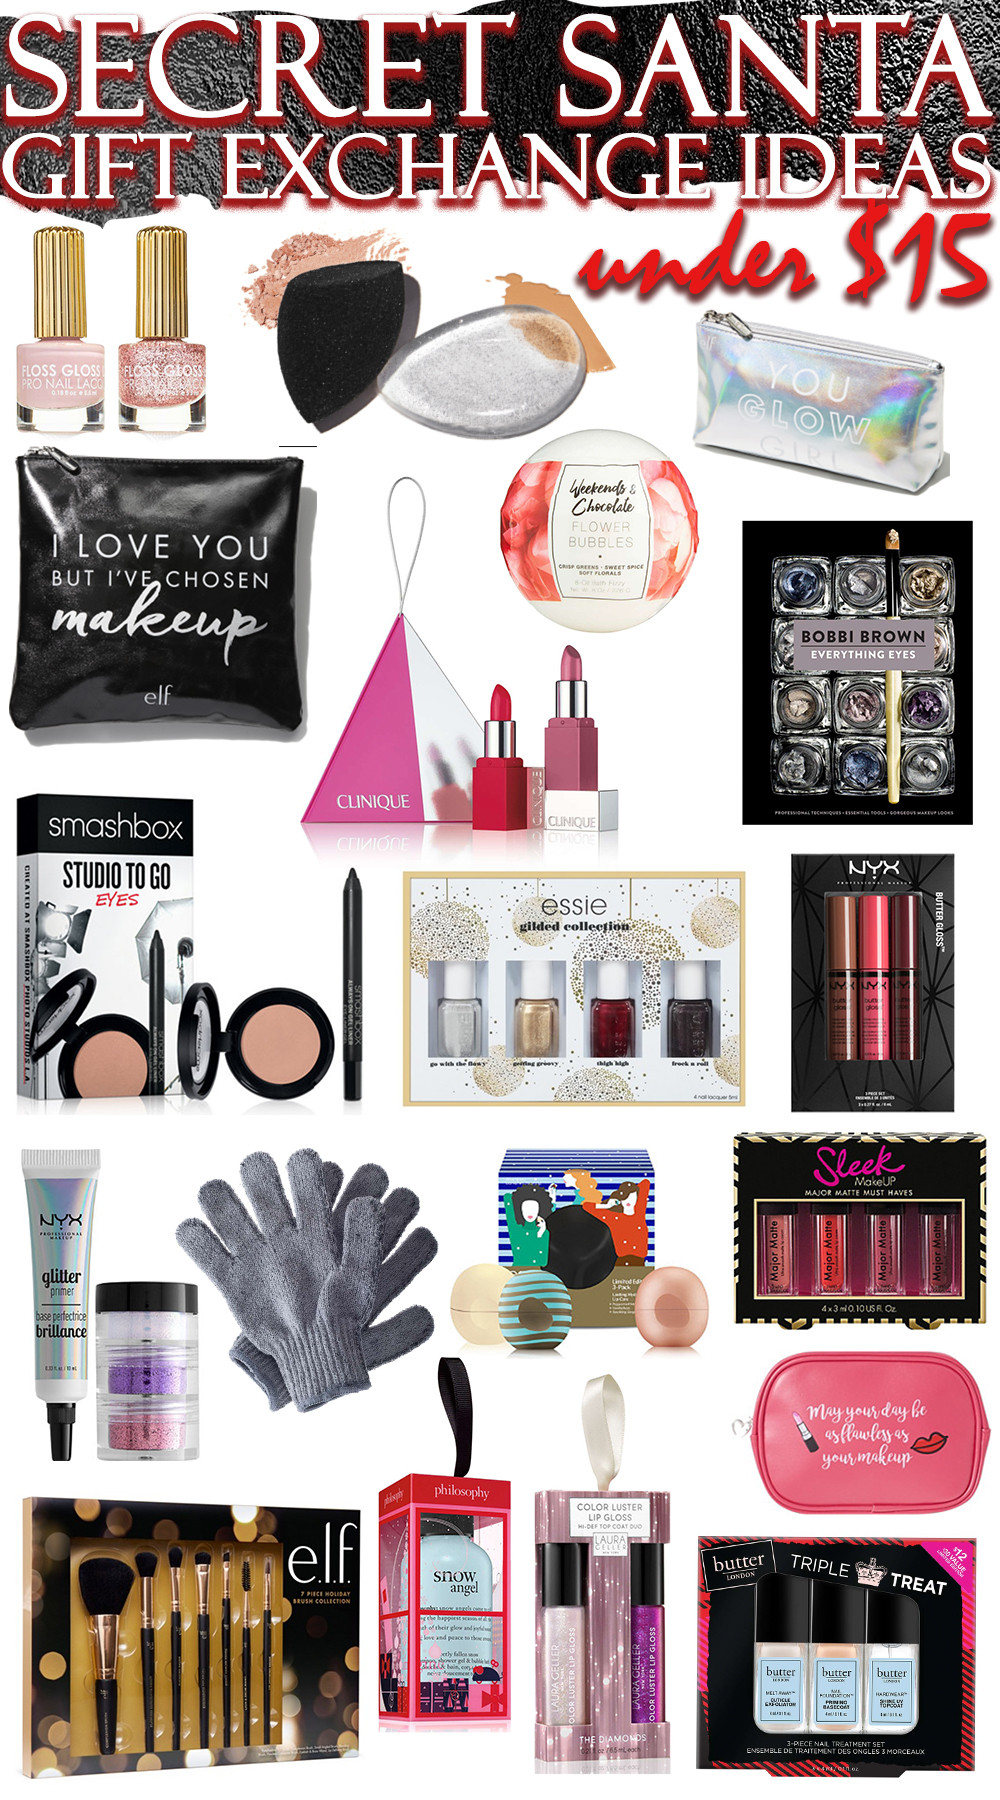 Best ideas about Best Gift Exchange Ideas . Save or Pin The Best Secret Santa Gift Exchange Ideas in Beauty & ALL Now.